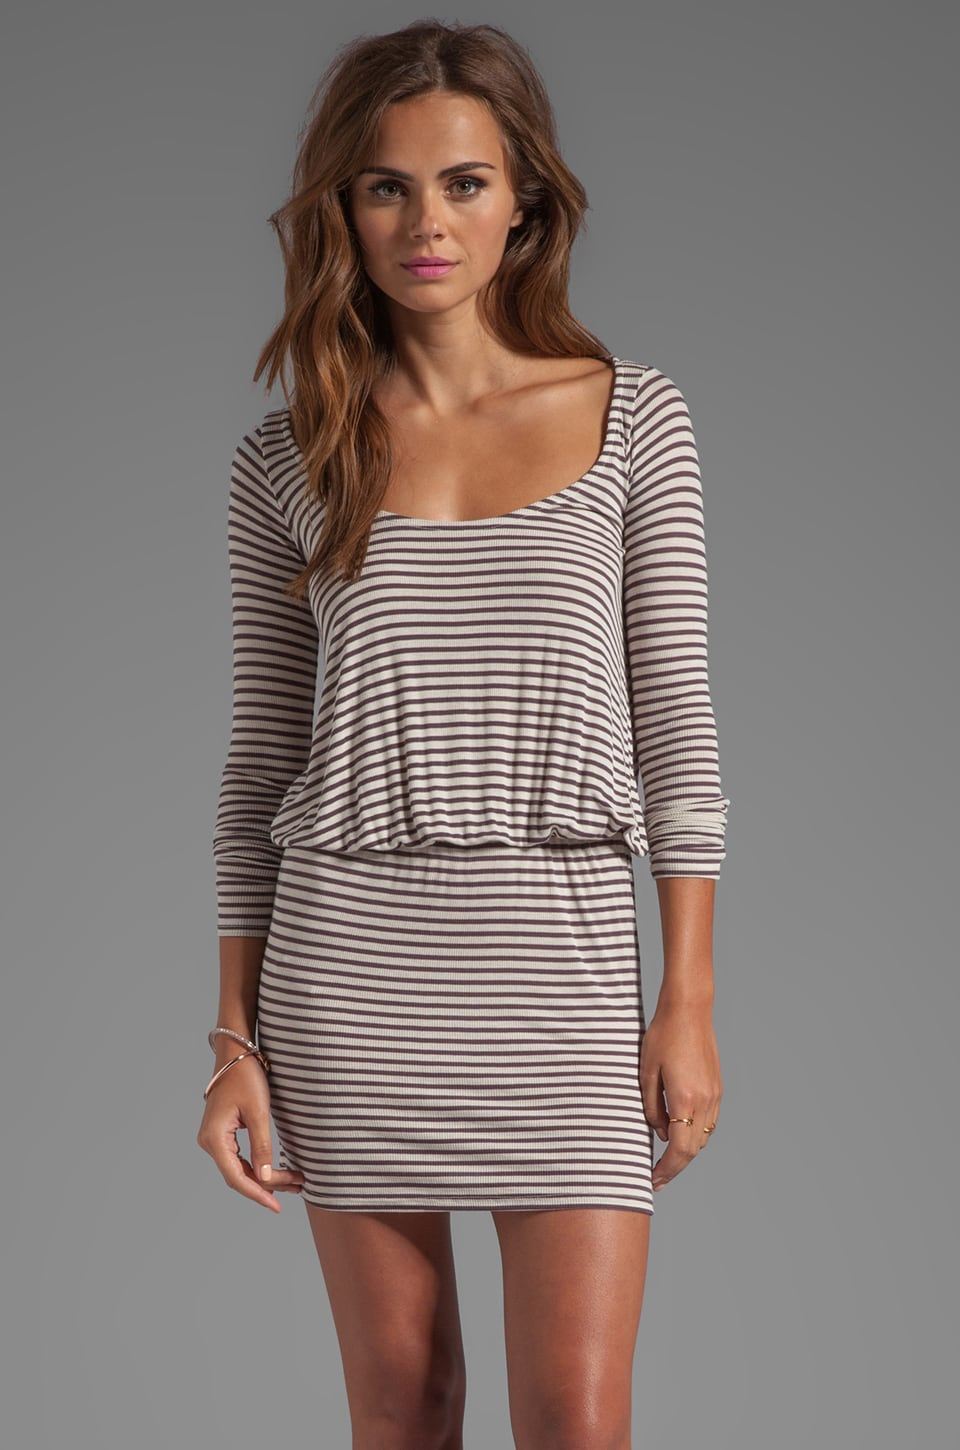 Rachel Pally Rib Hannah Dress in Alloy Stripe